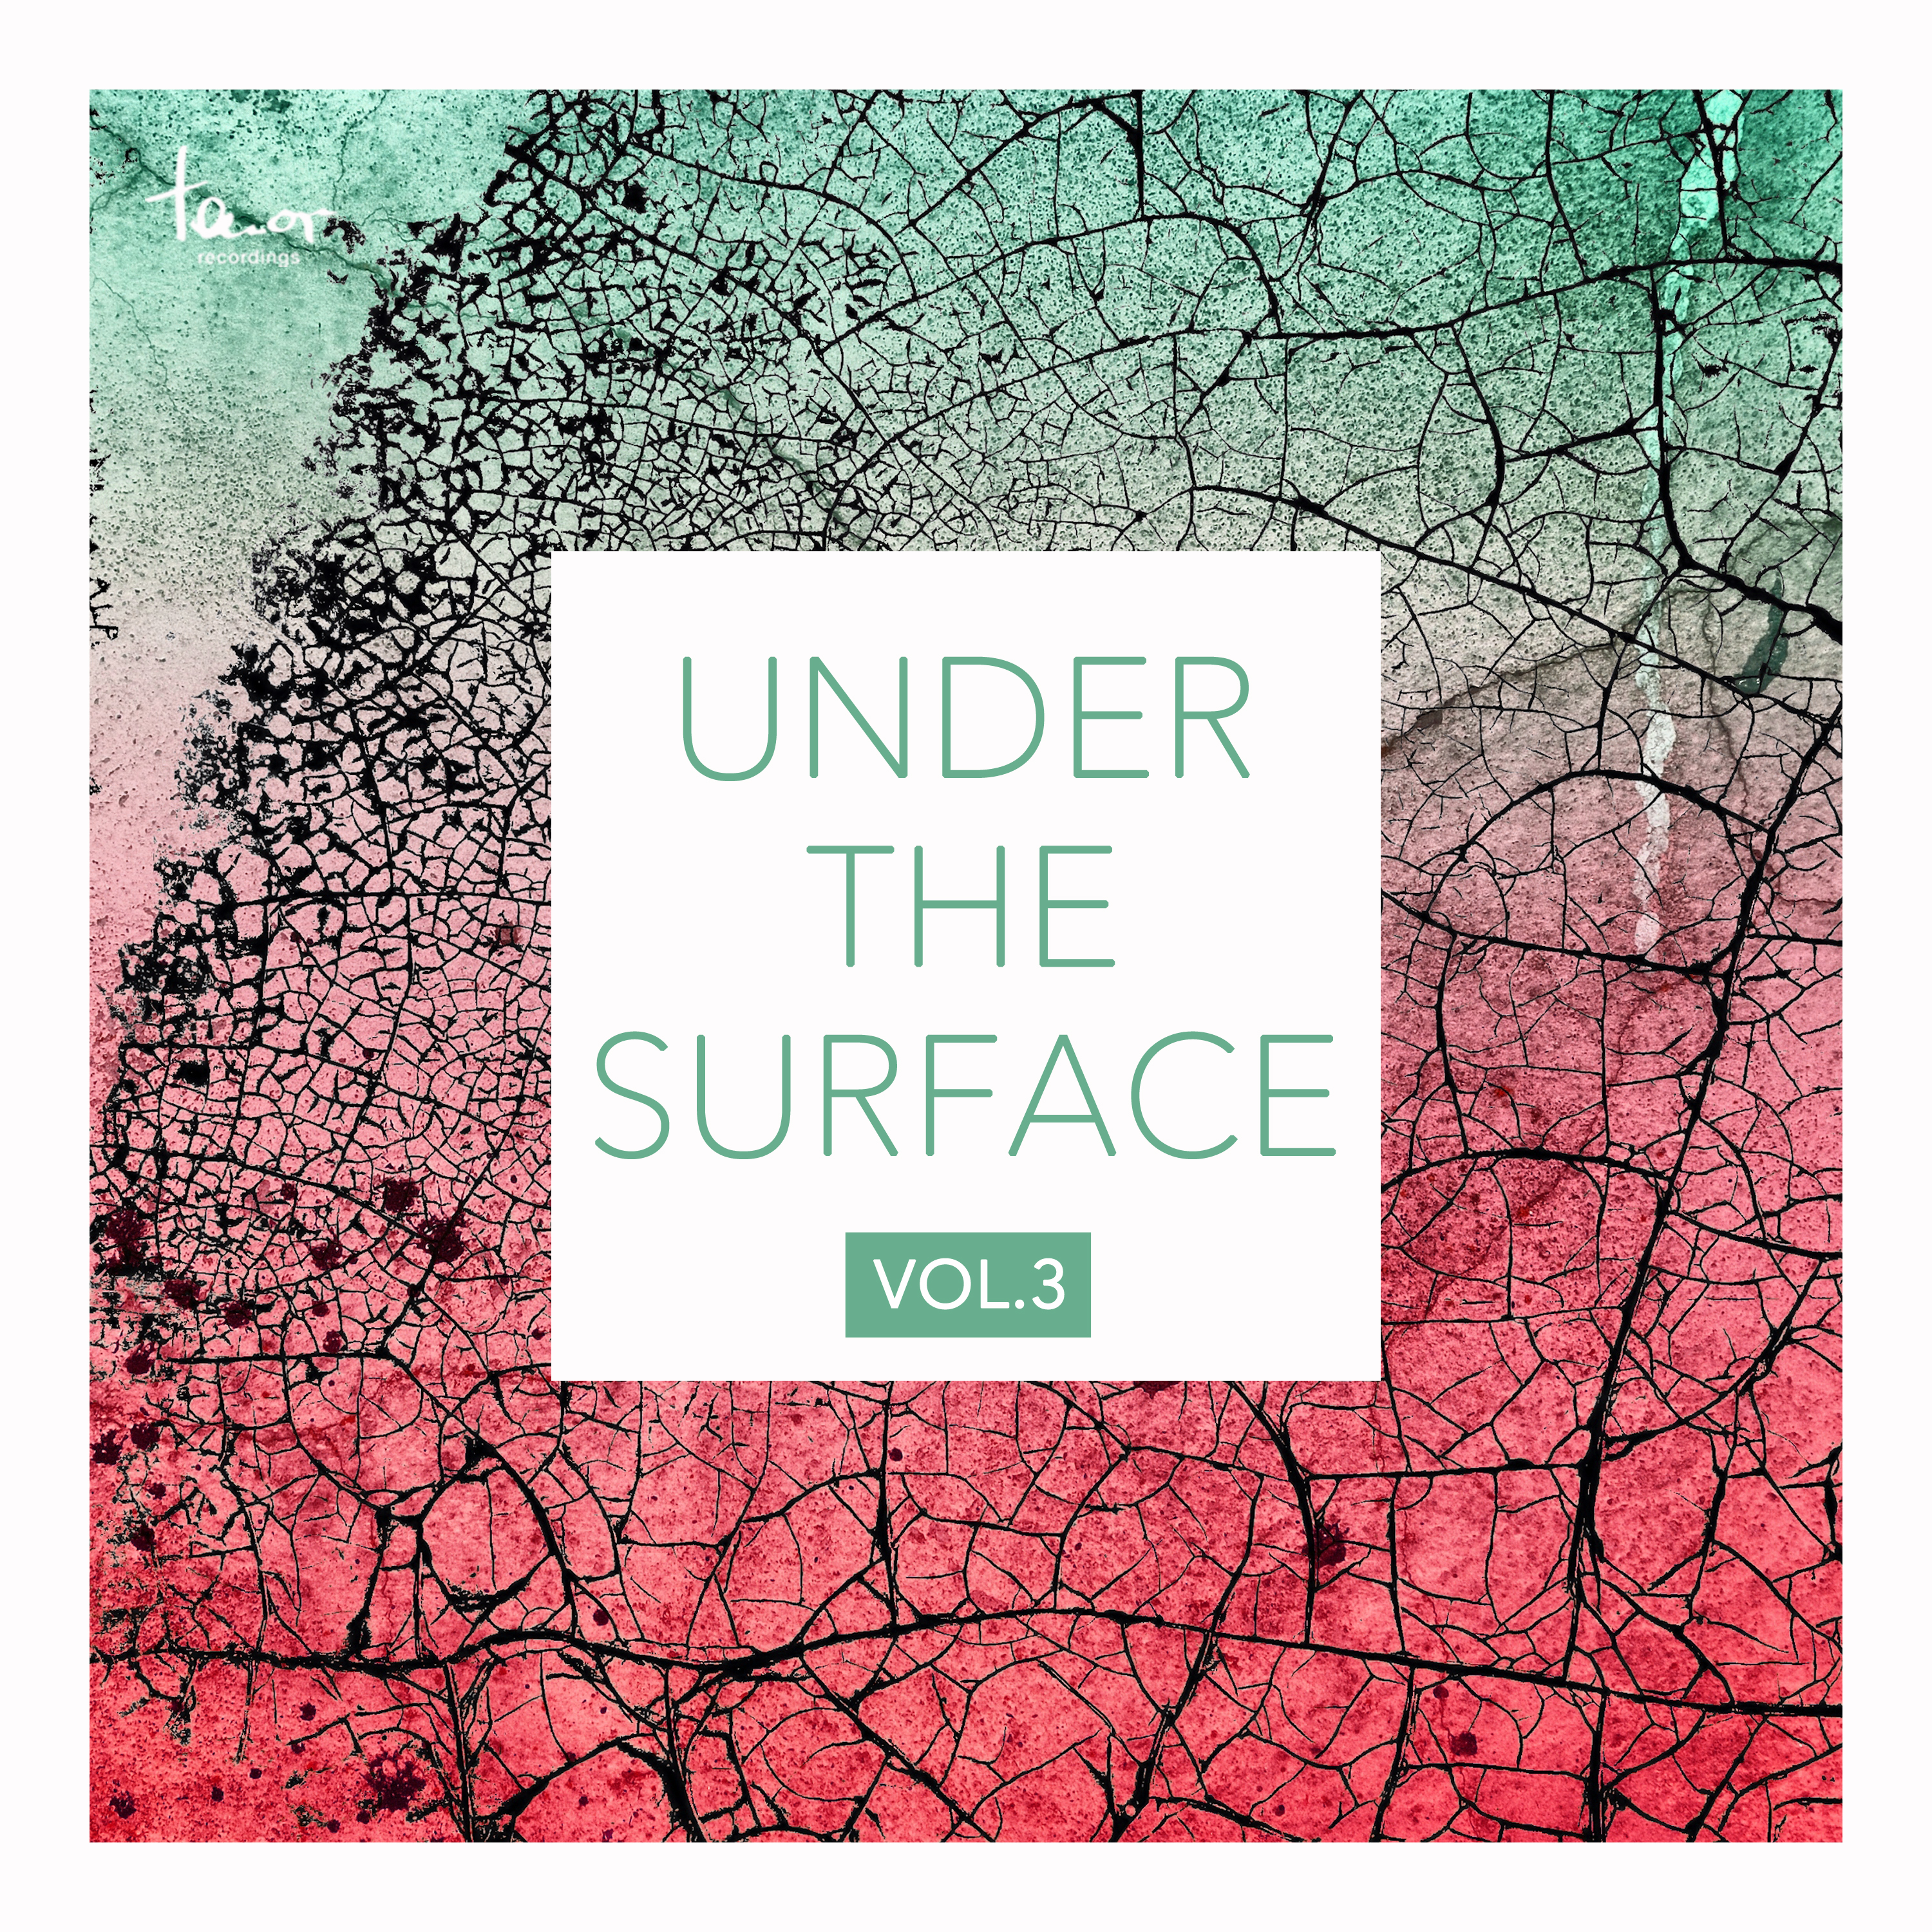 Under the Surface, Vol. 3